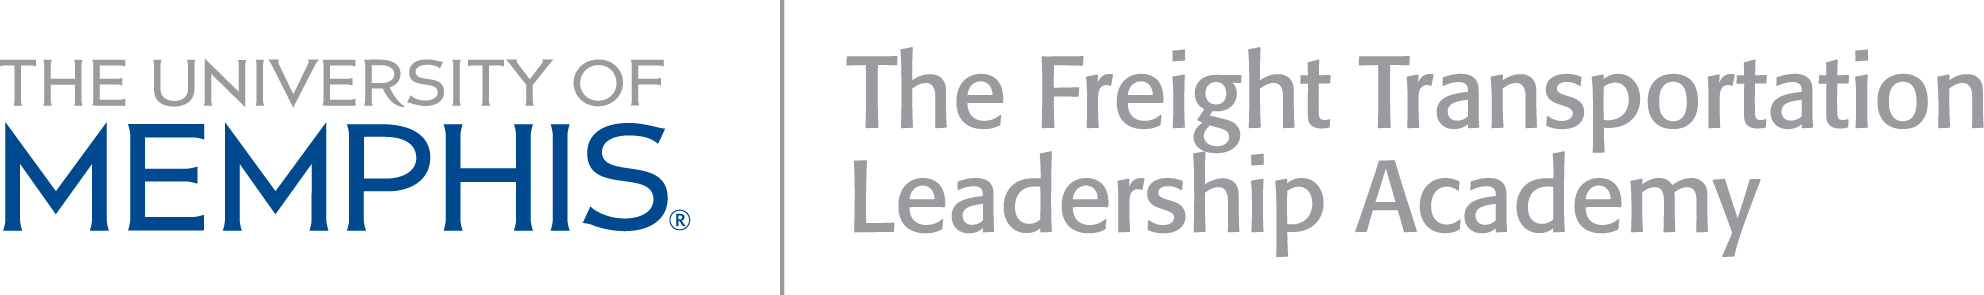 Freight Transportation Leadership Academy